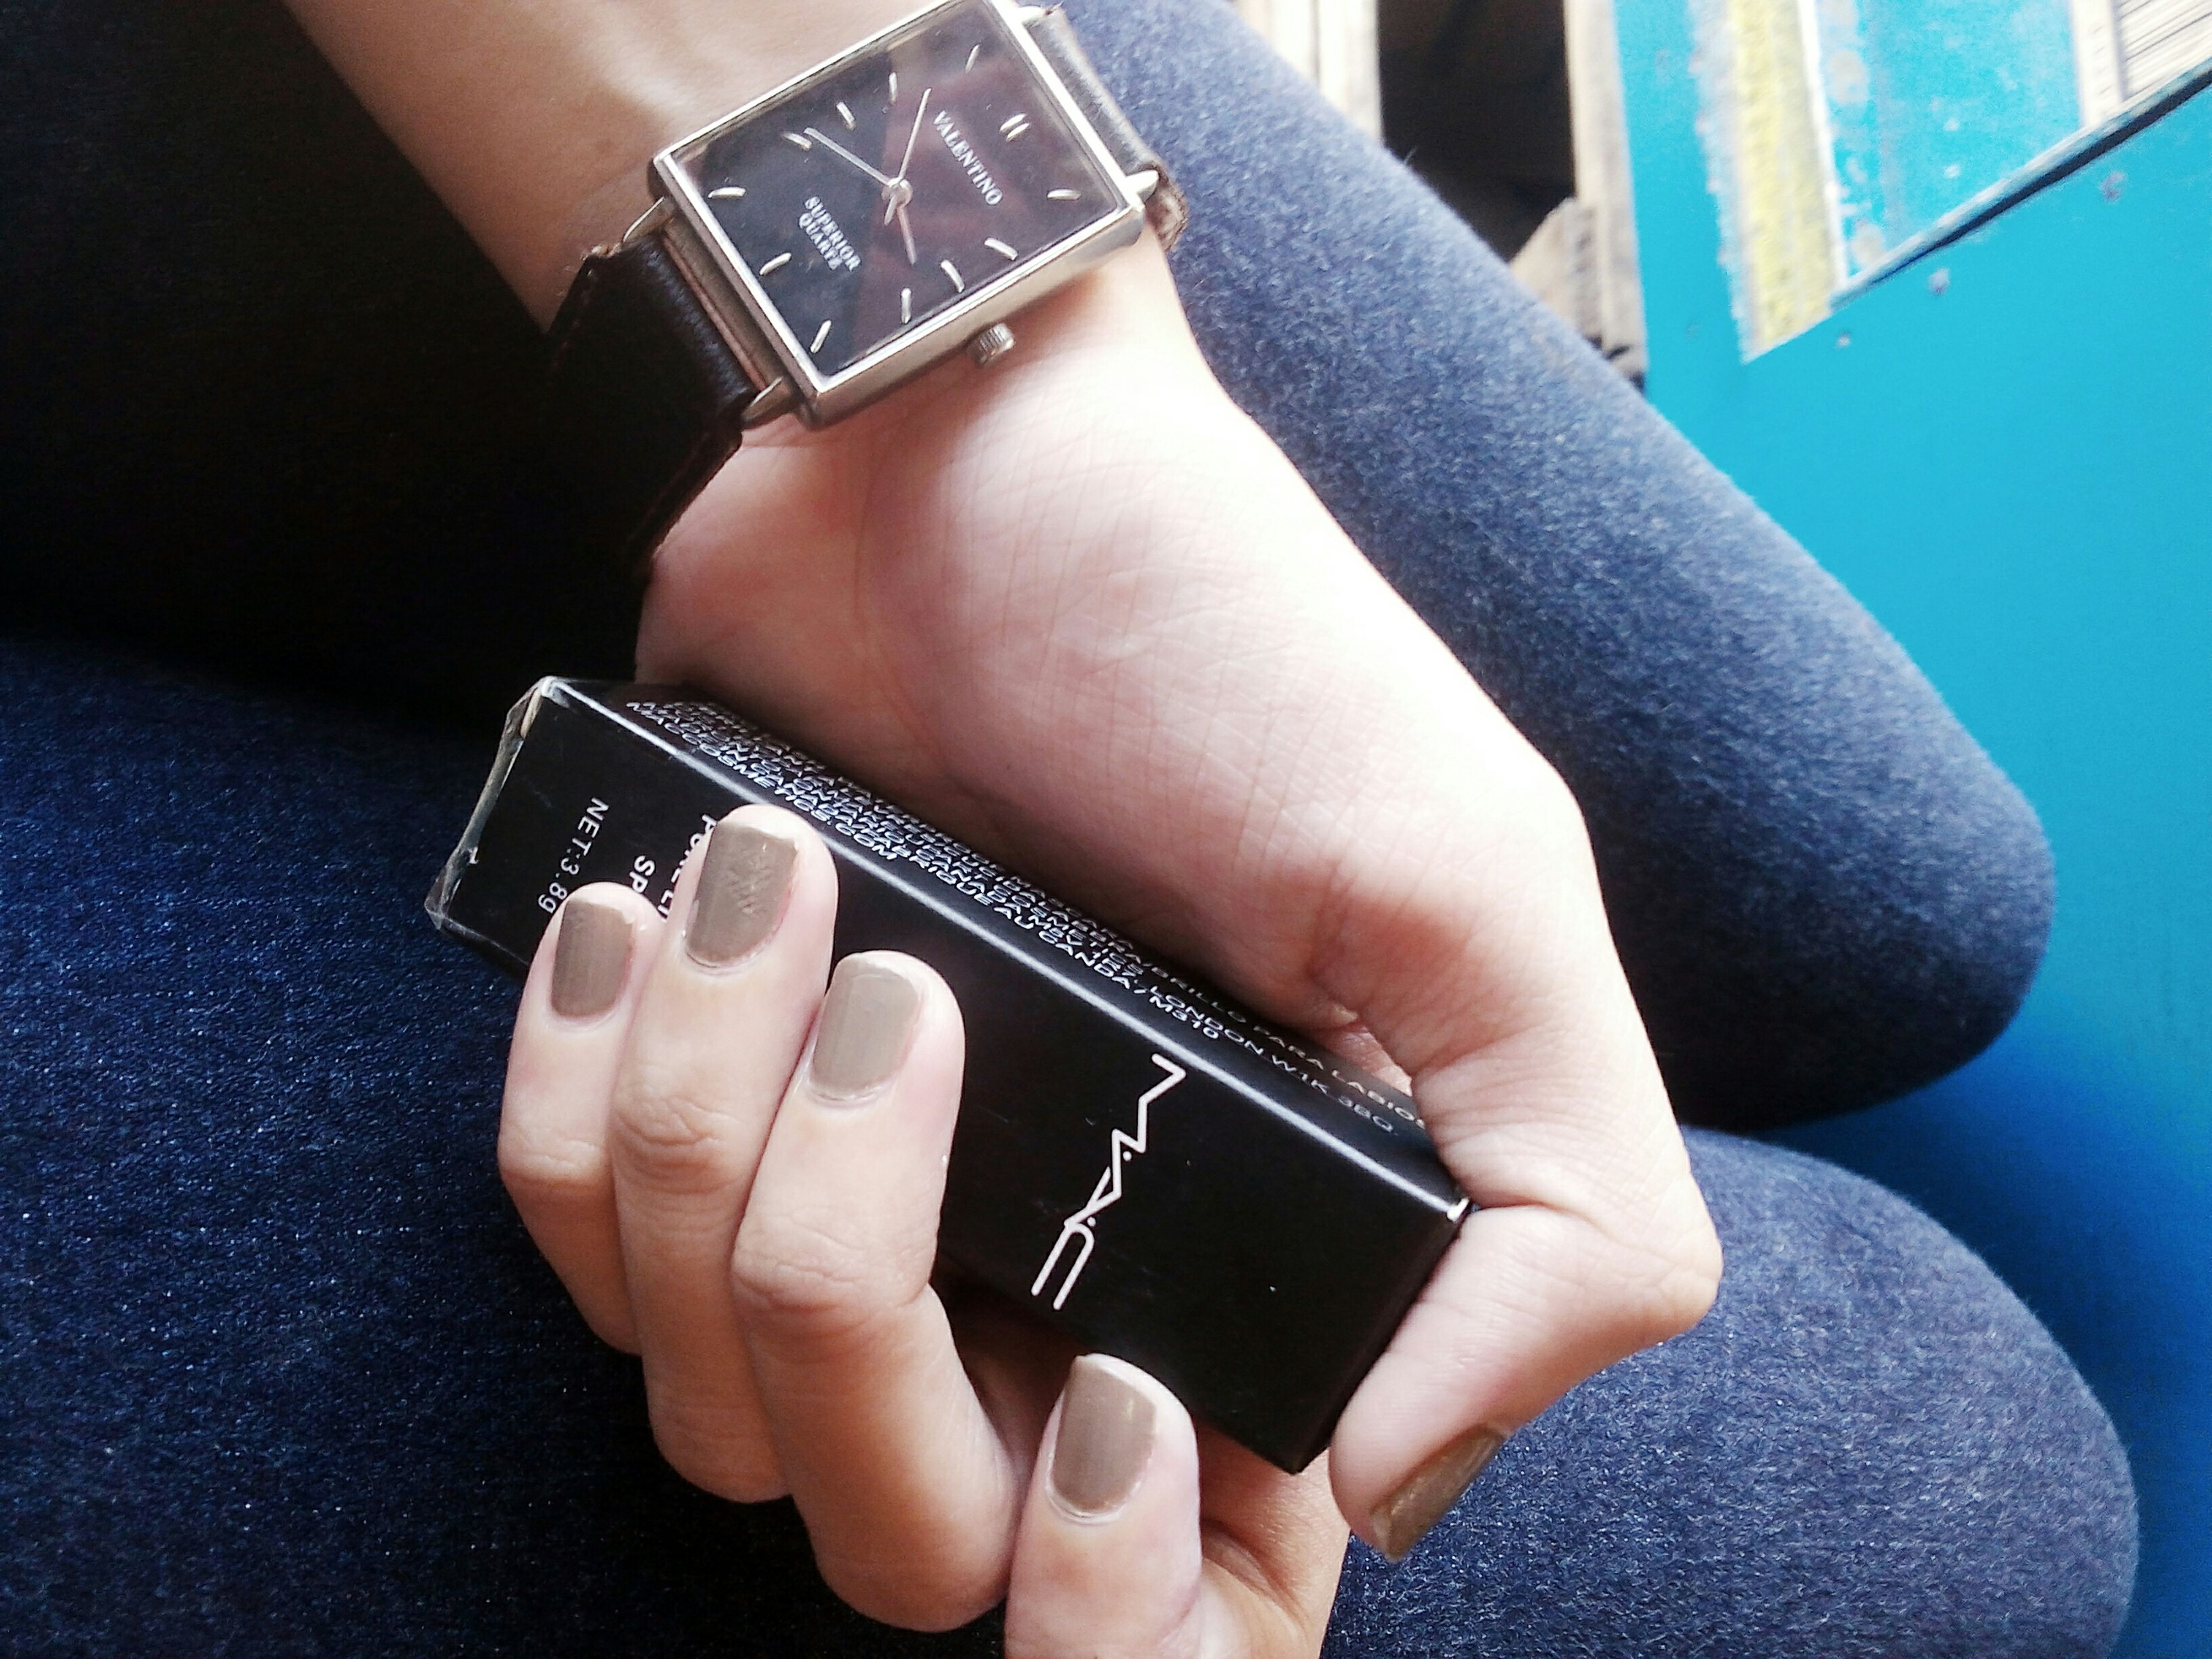 indoors, person, part of, close-up, lifestyles, human finger, holding, cropped, fashion, leisure activity, home interior, high angle view, femininity, ring, sensuality, sitting